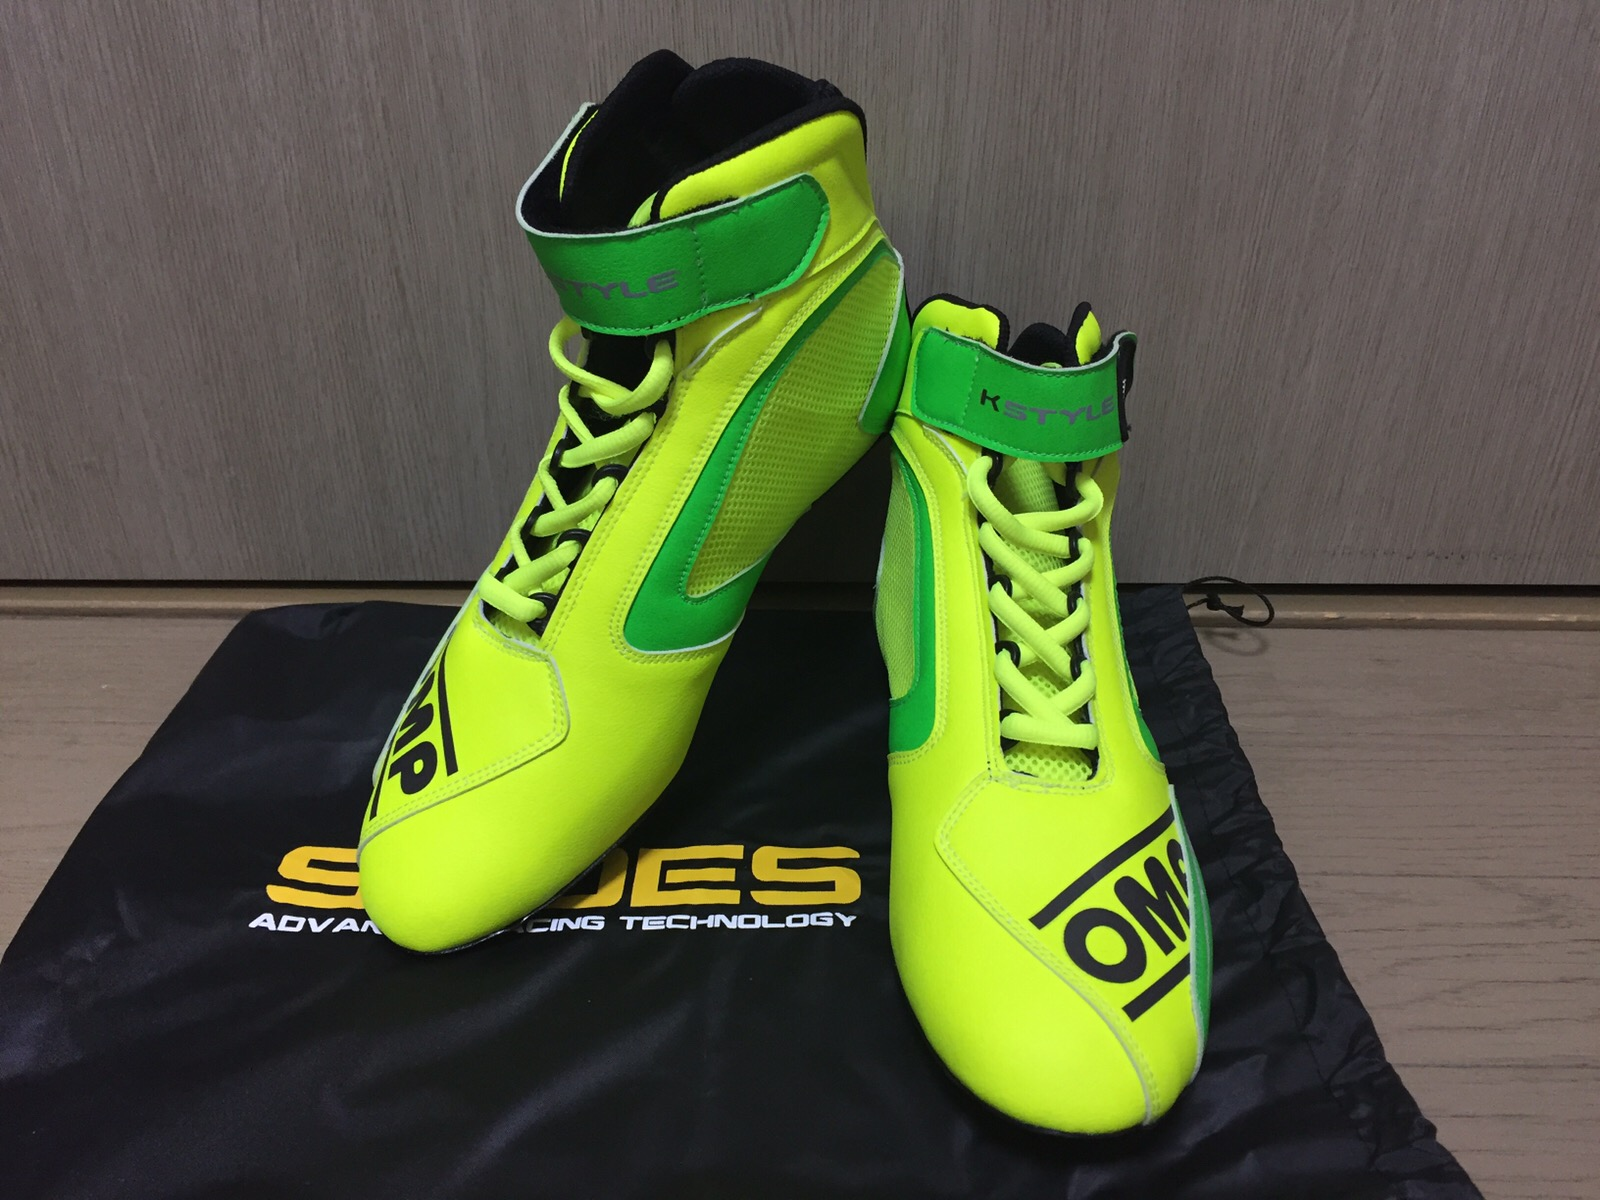 OMP Kartshoes KS-1 YellowGreen